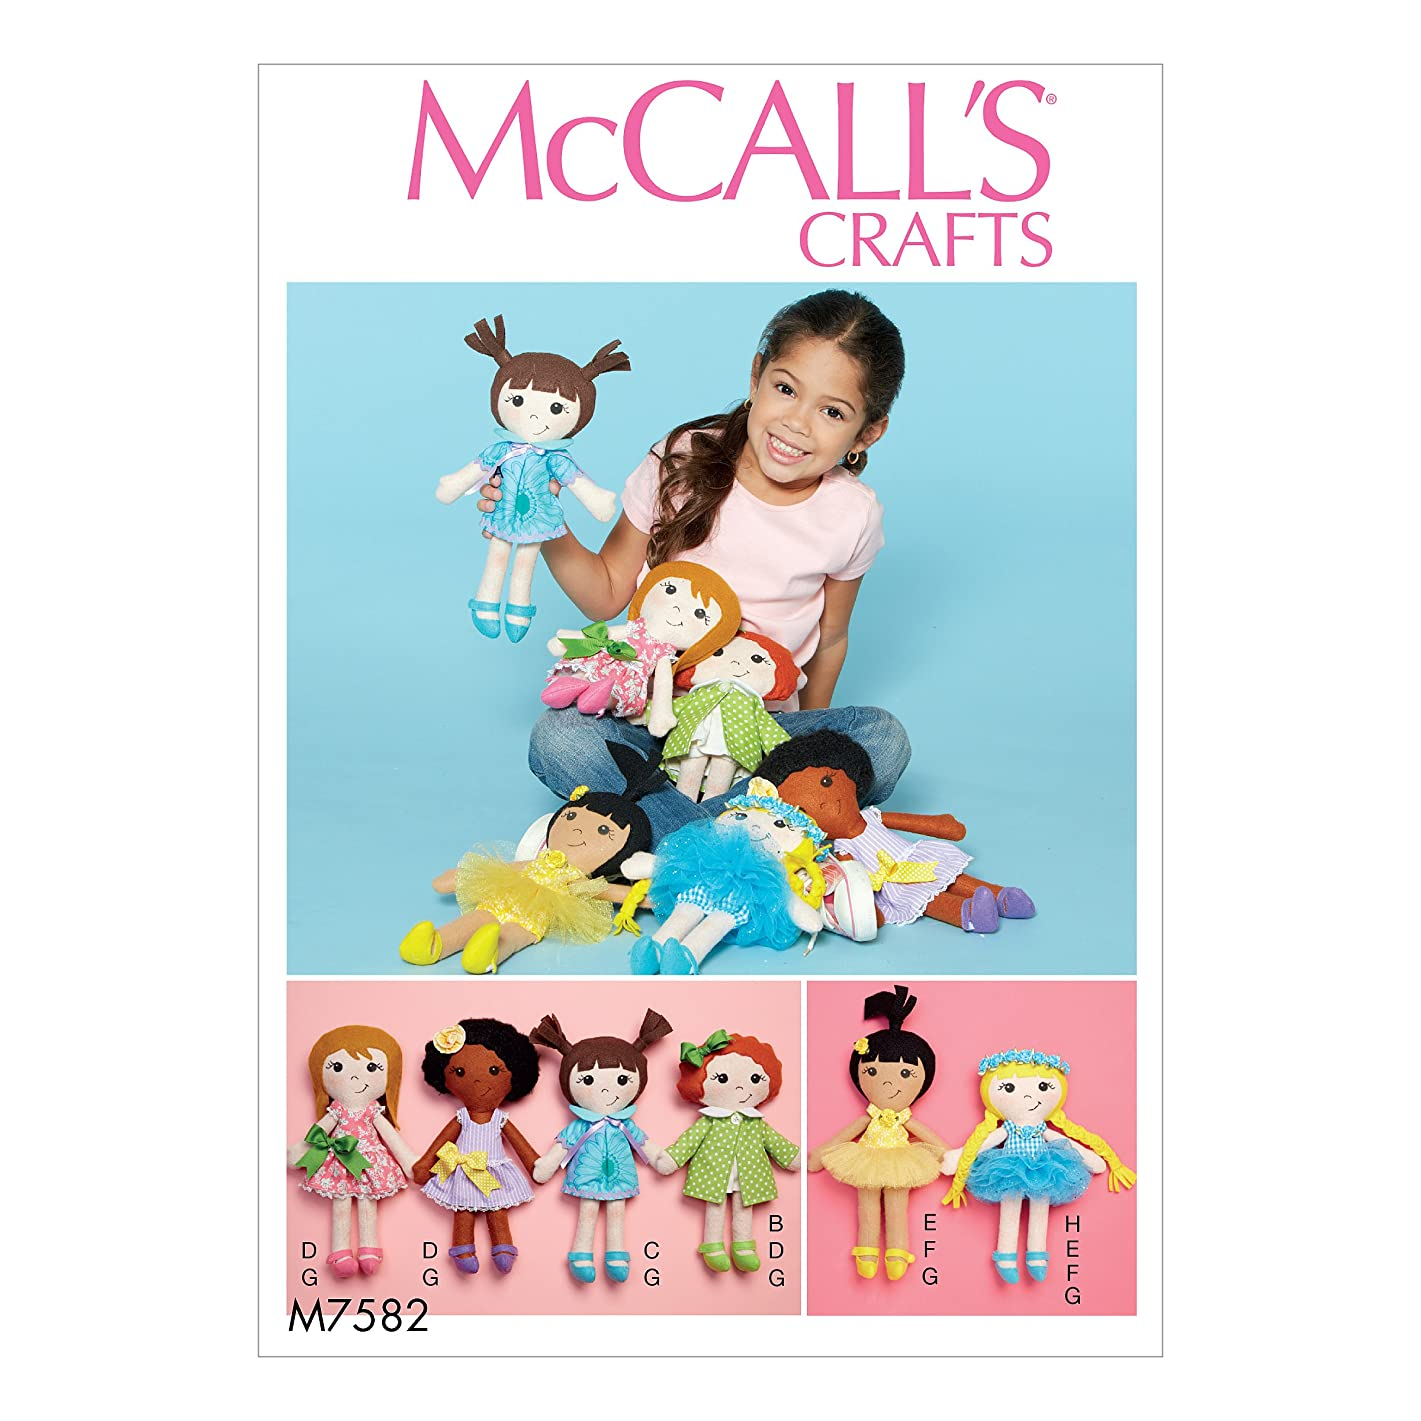 McCall's Patterns M7582OSZ Doll and Clothes